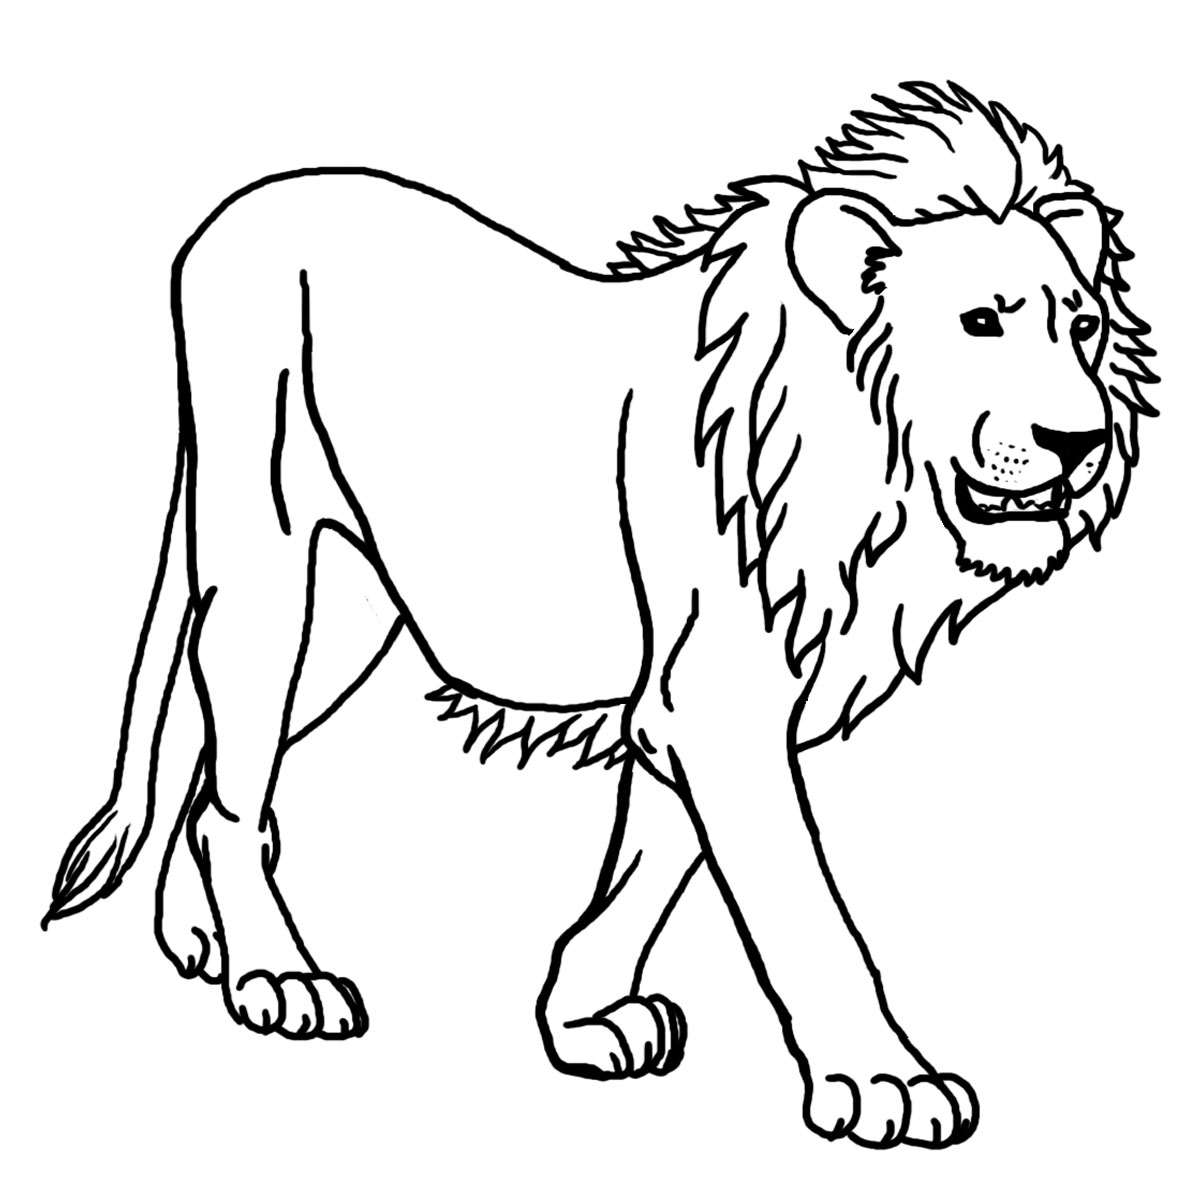 coloring pages for kids lion lion drawing for kids at getdrawings free download lion for pages coloring kids